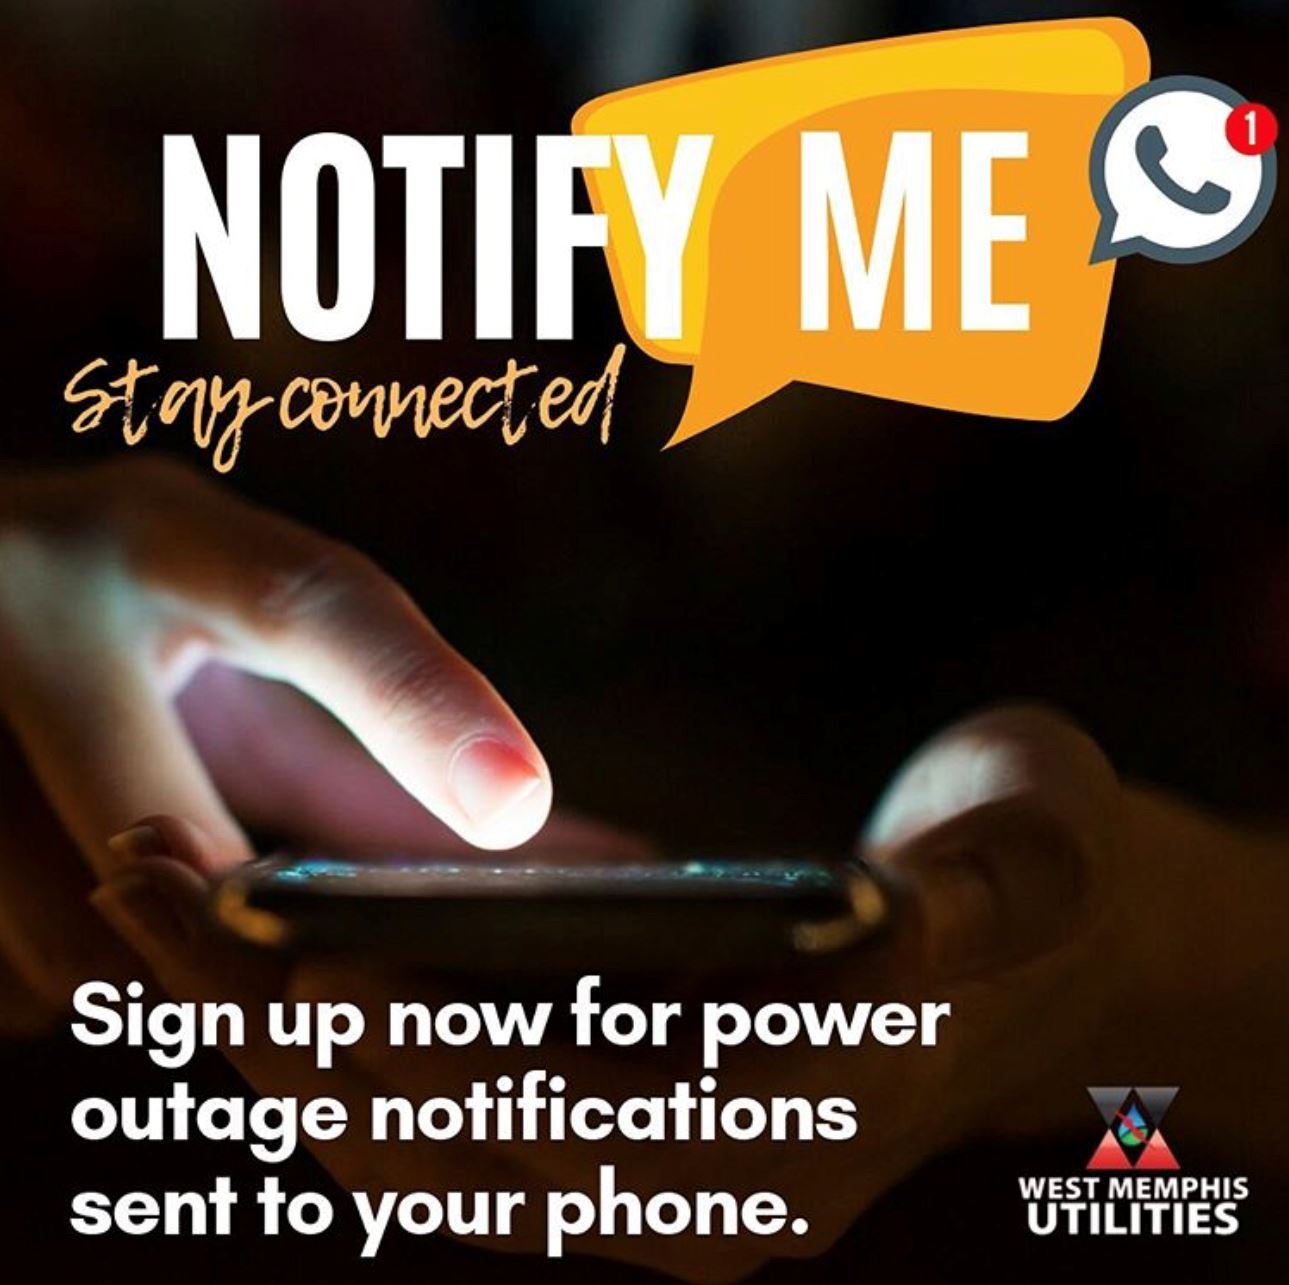 notify me west memphis utilities